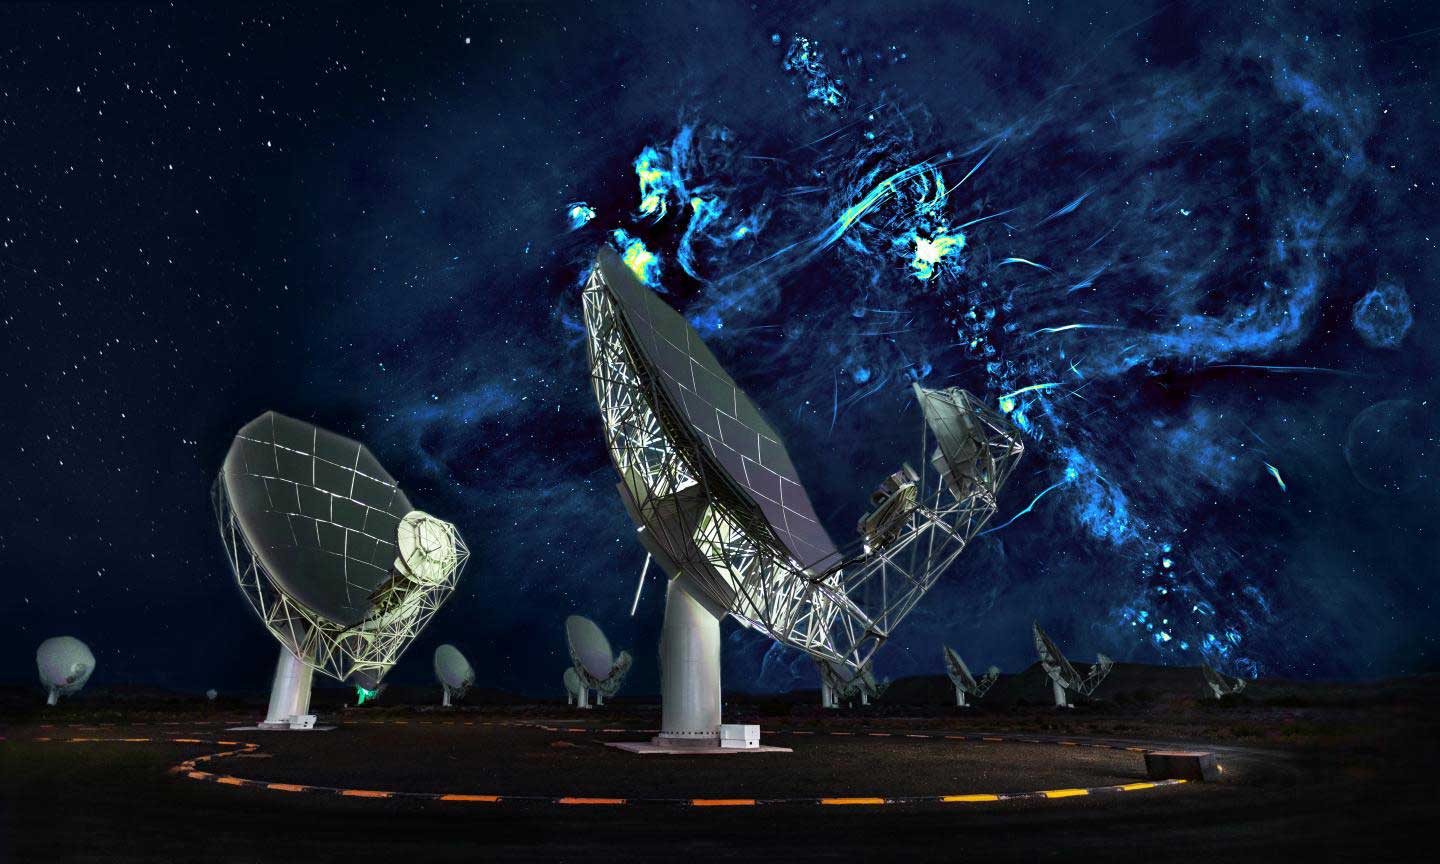 Radio image of the center of the Milky Way with a portion of the MeerKAT telescope array in the foreground. The plane of the galaxy is marked by a series of bright features, exploded stars and regions where new stars are being born, and runs diagonally across the image from lower right to top center. The black hole at the center of the Milky Way is hidden in the brightest of these extended regions. The radio bubbles extend from between the two nearest antennas to the upper right corner. Many magnetized filaments can be seen running parallel to the bubbles. In this composite view, the sky to the left of the second nearest antenna is the night sky visible to the unaided eye, and the radio image to the right has been enlarged to highlight its fine features.  CREDIT Credit: Oxford, SARAO